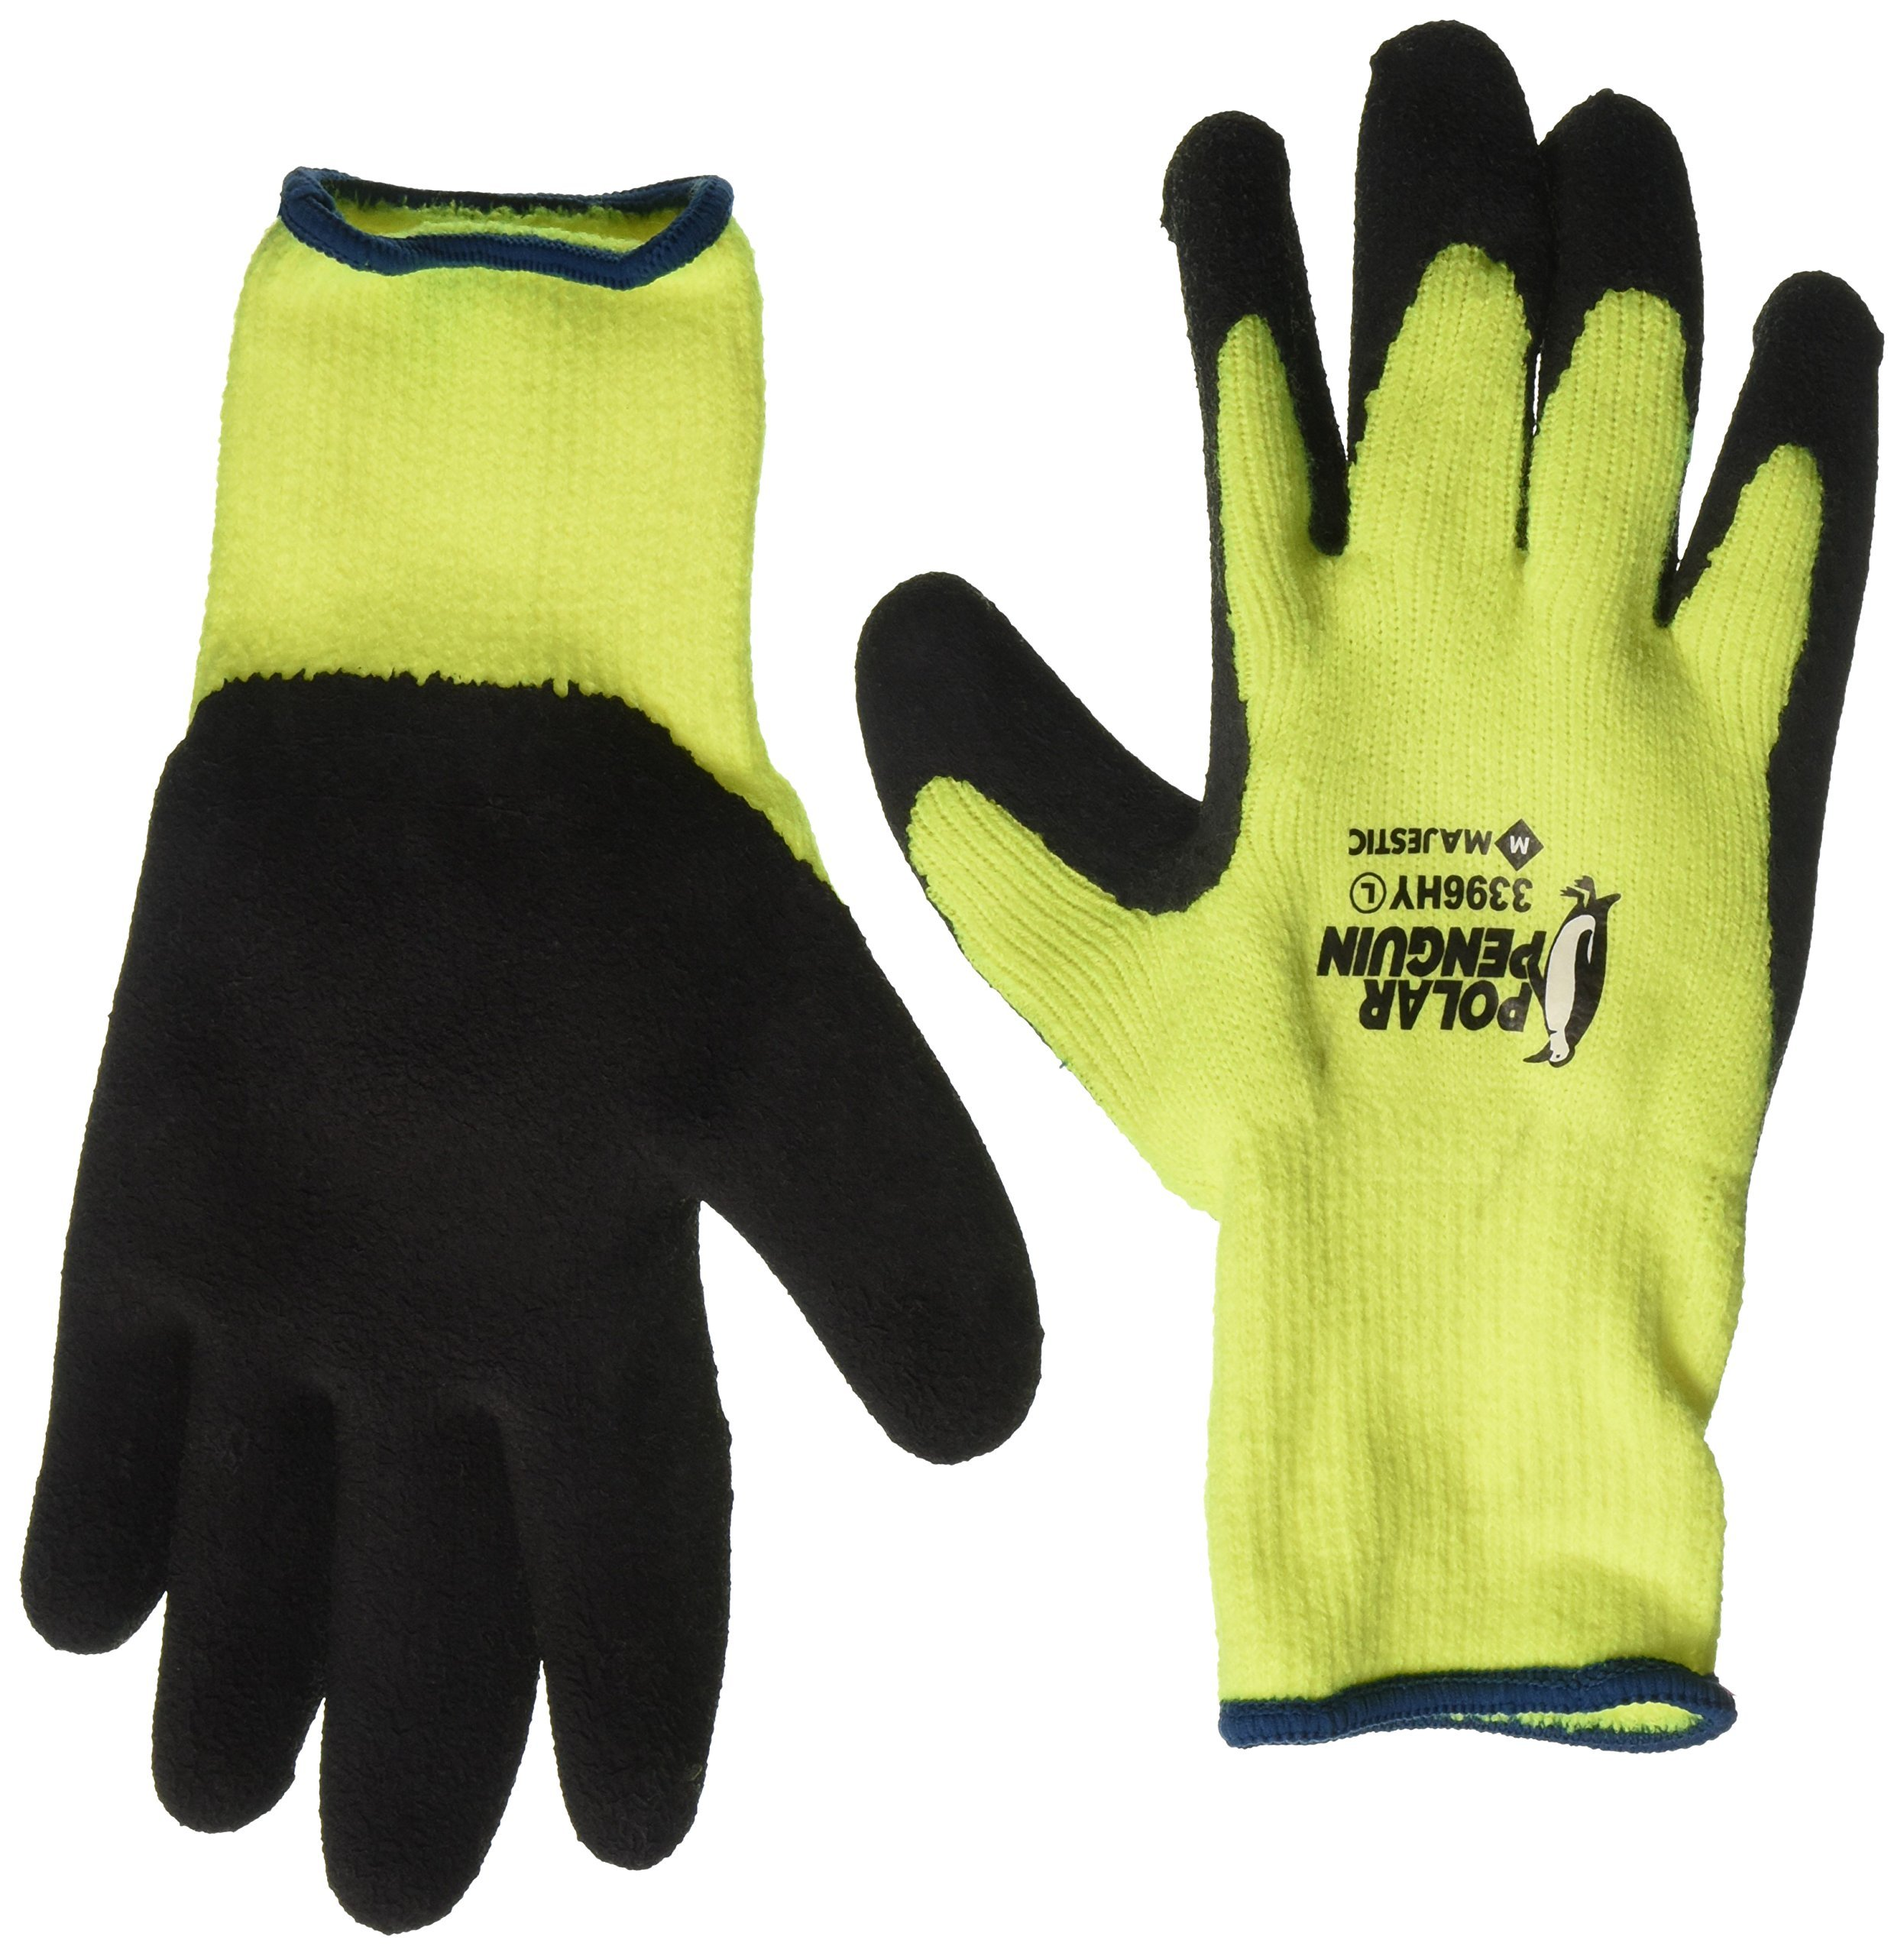 Majestic Polar Penguin 3396HY Winter Lined Hi-Vis Green Yellow Latex Coated Palm Gloves Size Large (12 Pair) by Majestic Glove